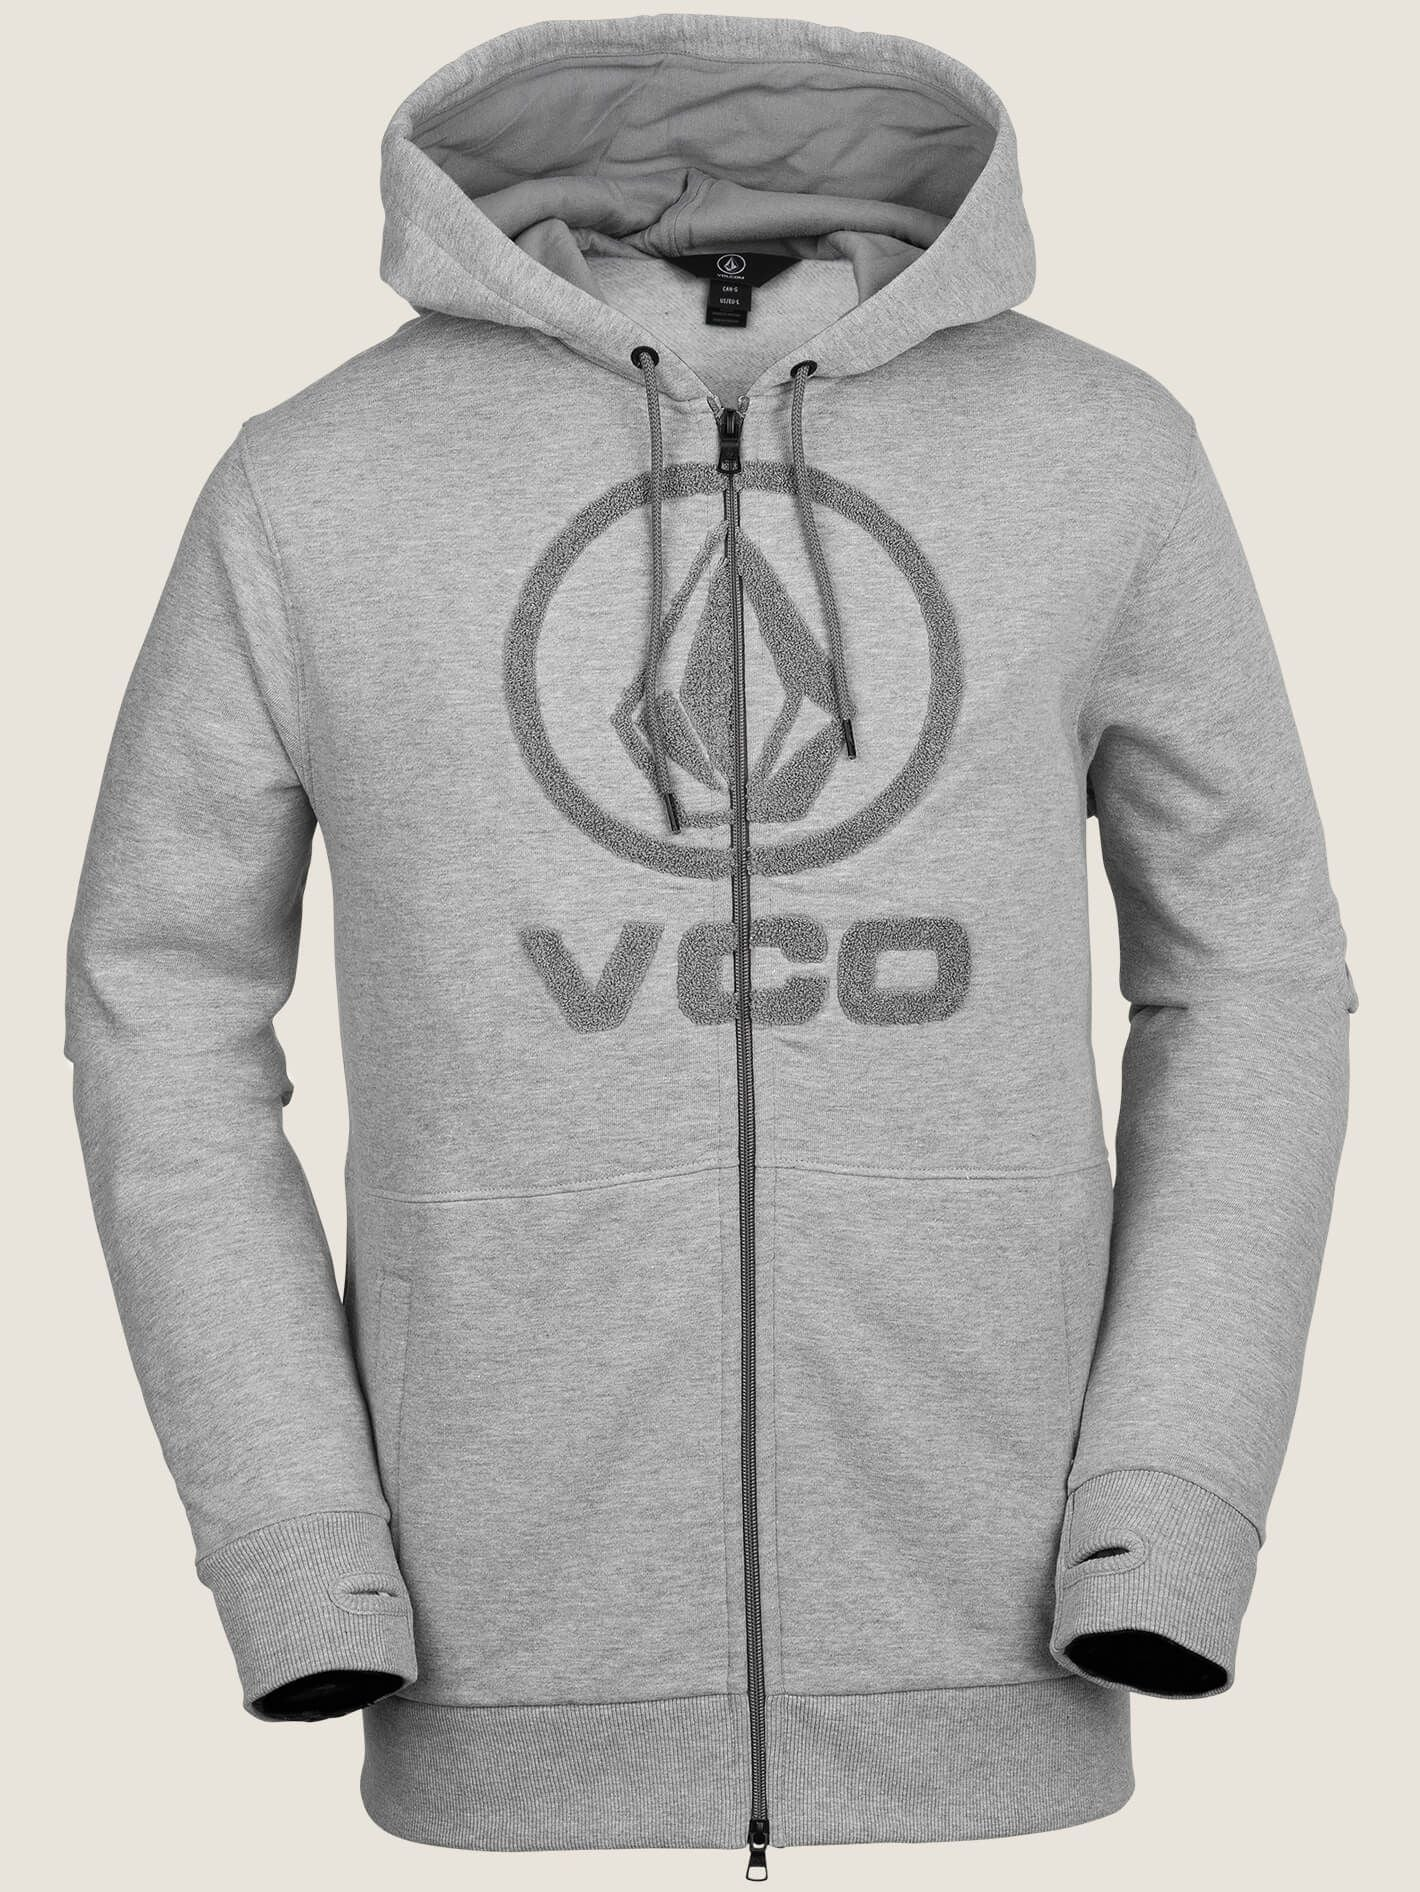 Volcom Stone Terry Fleece - 88 Gear